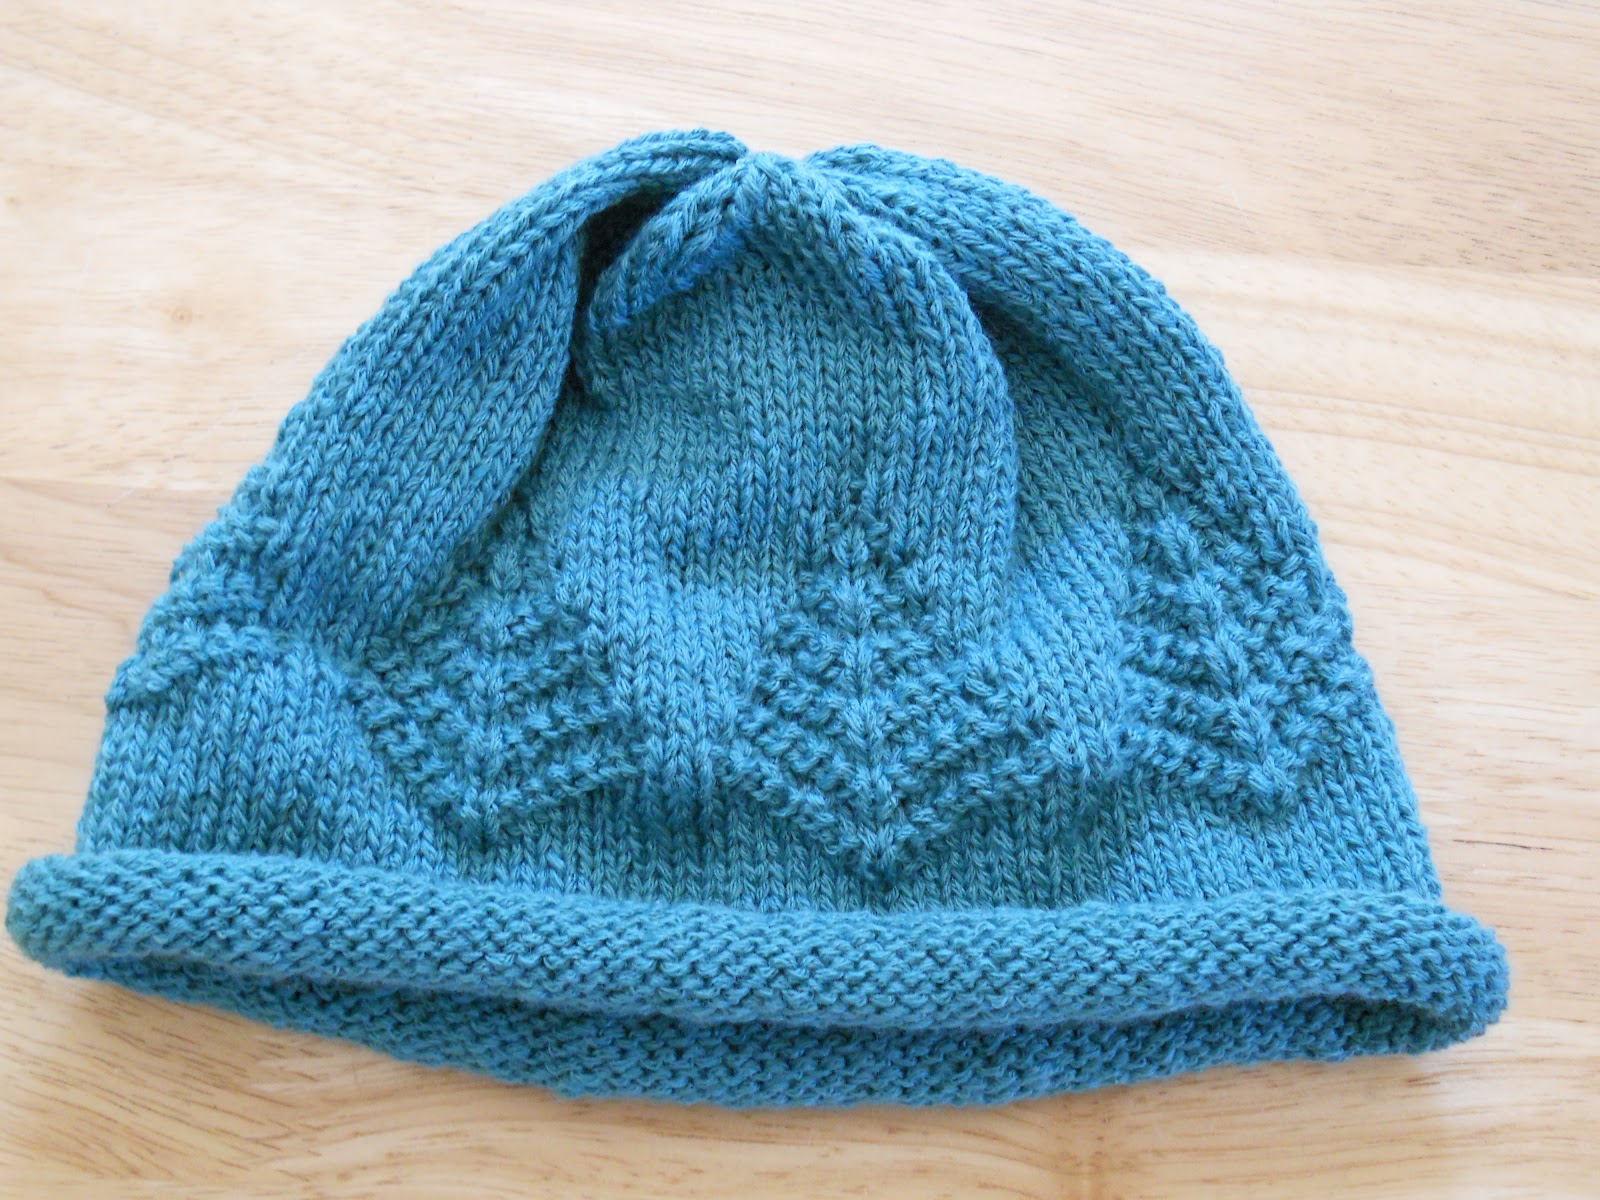 Knitted Chemo Hat Patterns Simple Design